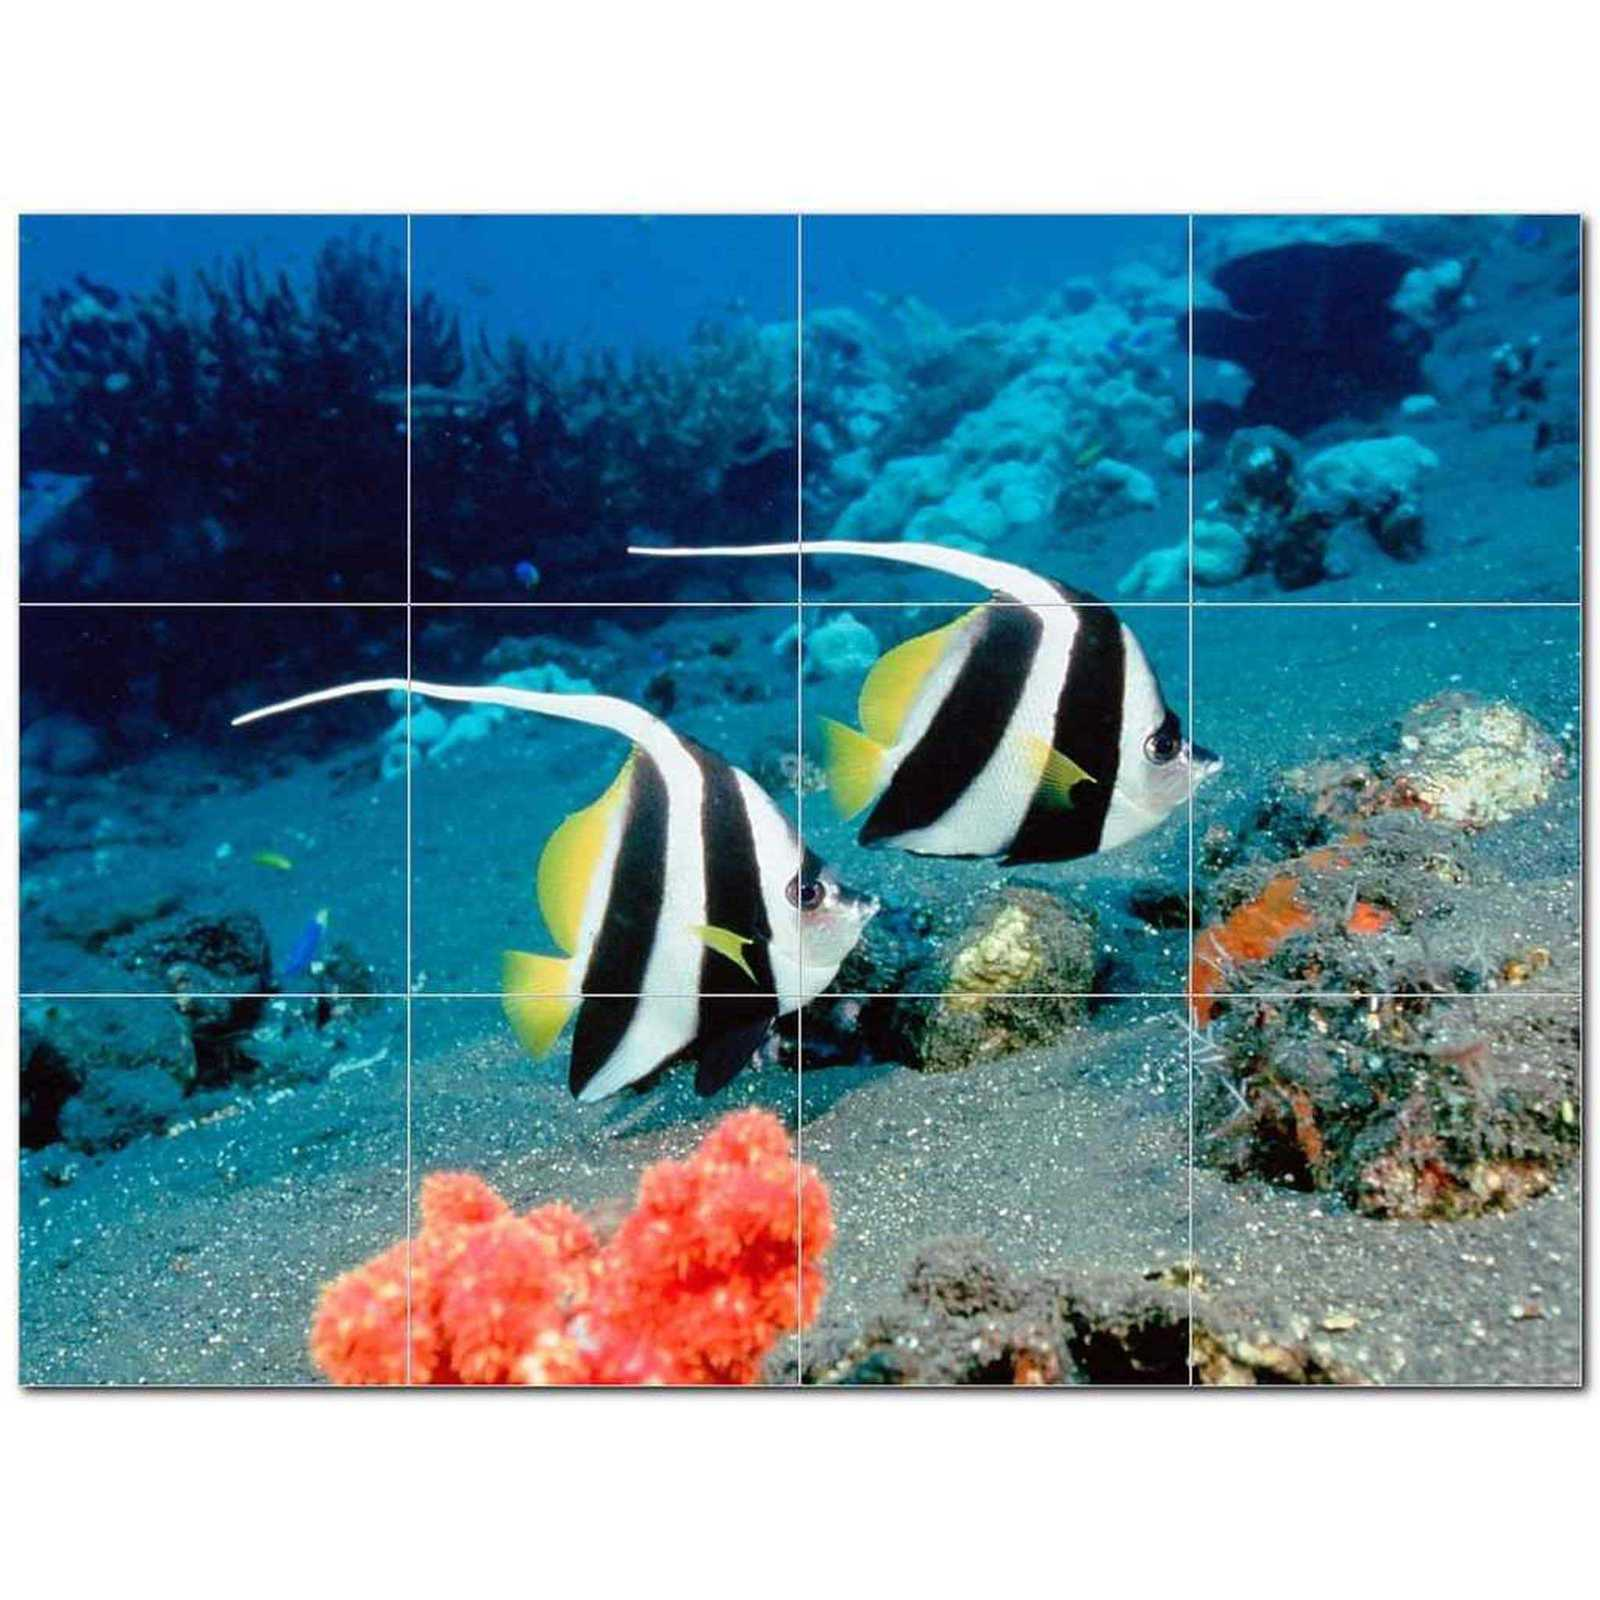 Primary image for Sealife Photo Ceramic Tile Mural Kitchen Backsplash Bathroom Shower BAZ405779